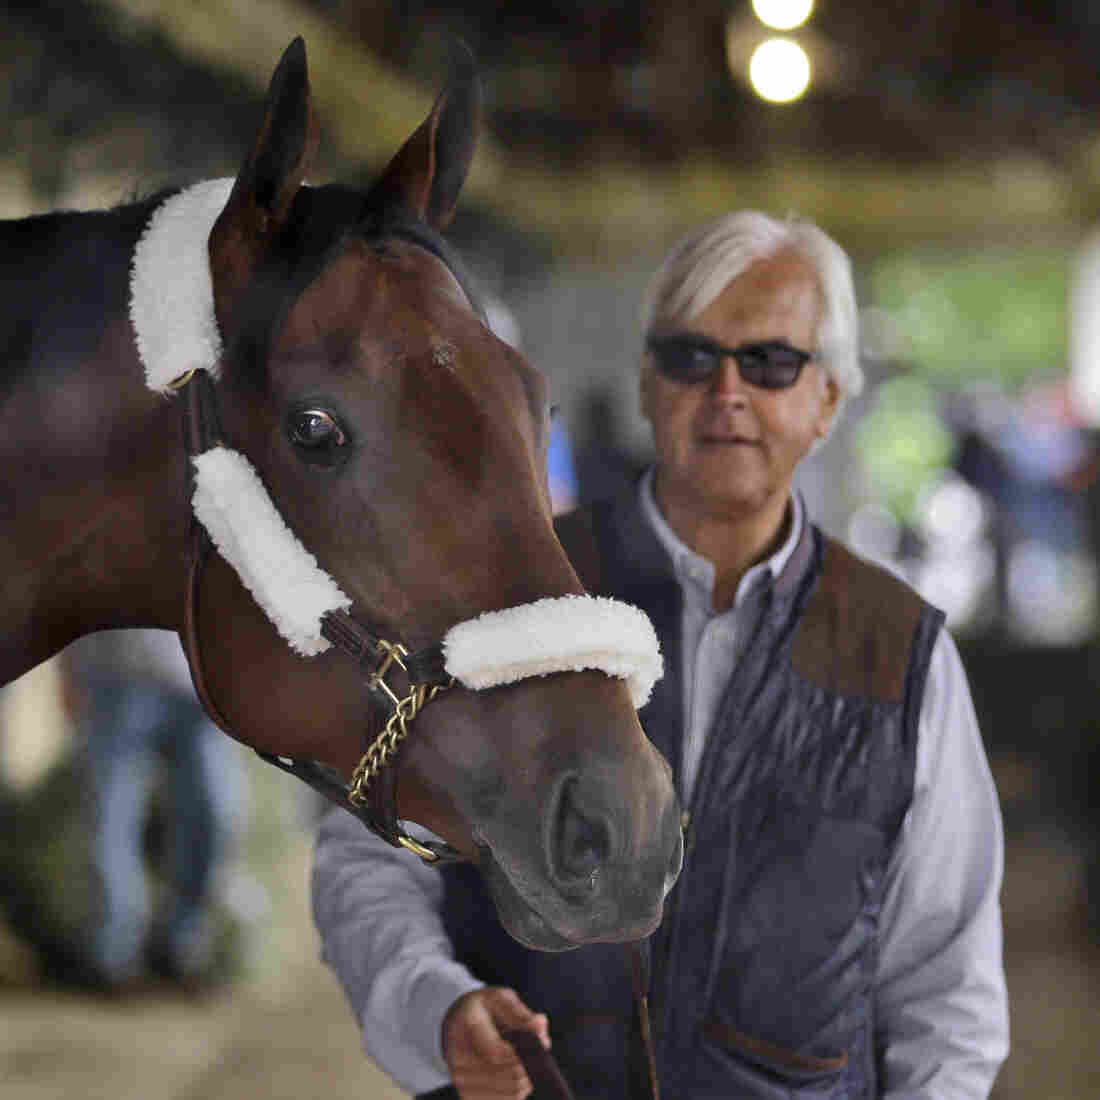 American Pharoah and trainer Bob Baffert at Belmont Park in Elmont, N.Y. American Pharoah will try to become horse racing's first Triple Crown winner since 1978.